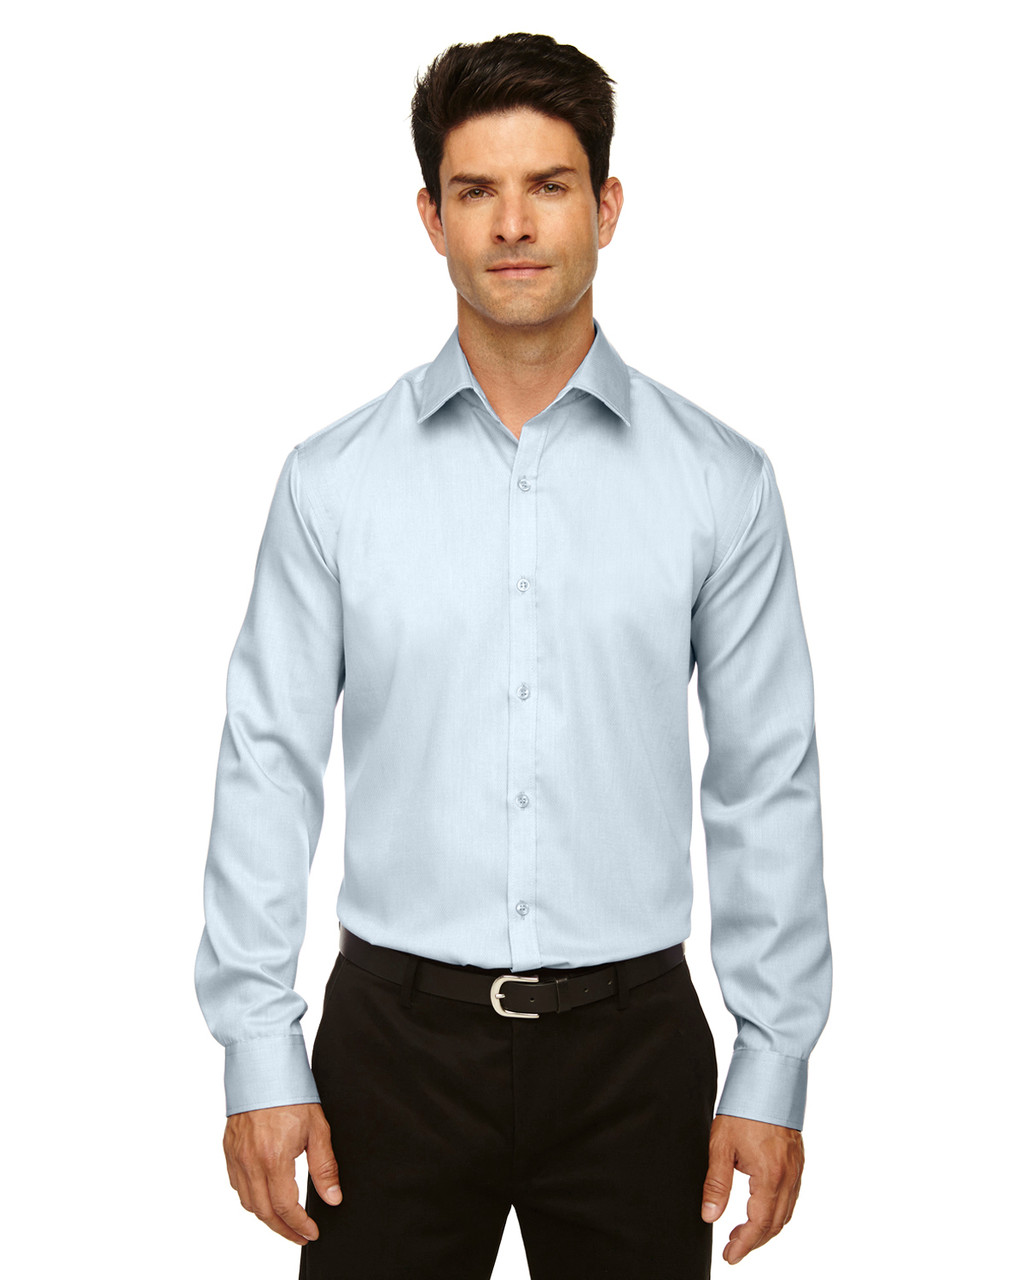 Cool Blue - 88673 North End Men's Boulevard Wrinkle-Free Two-Ply 80's Cotton Dobby Taped Shirt with Oxford Twill | BlankClothing.ca